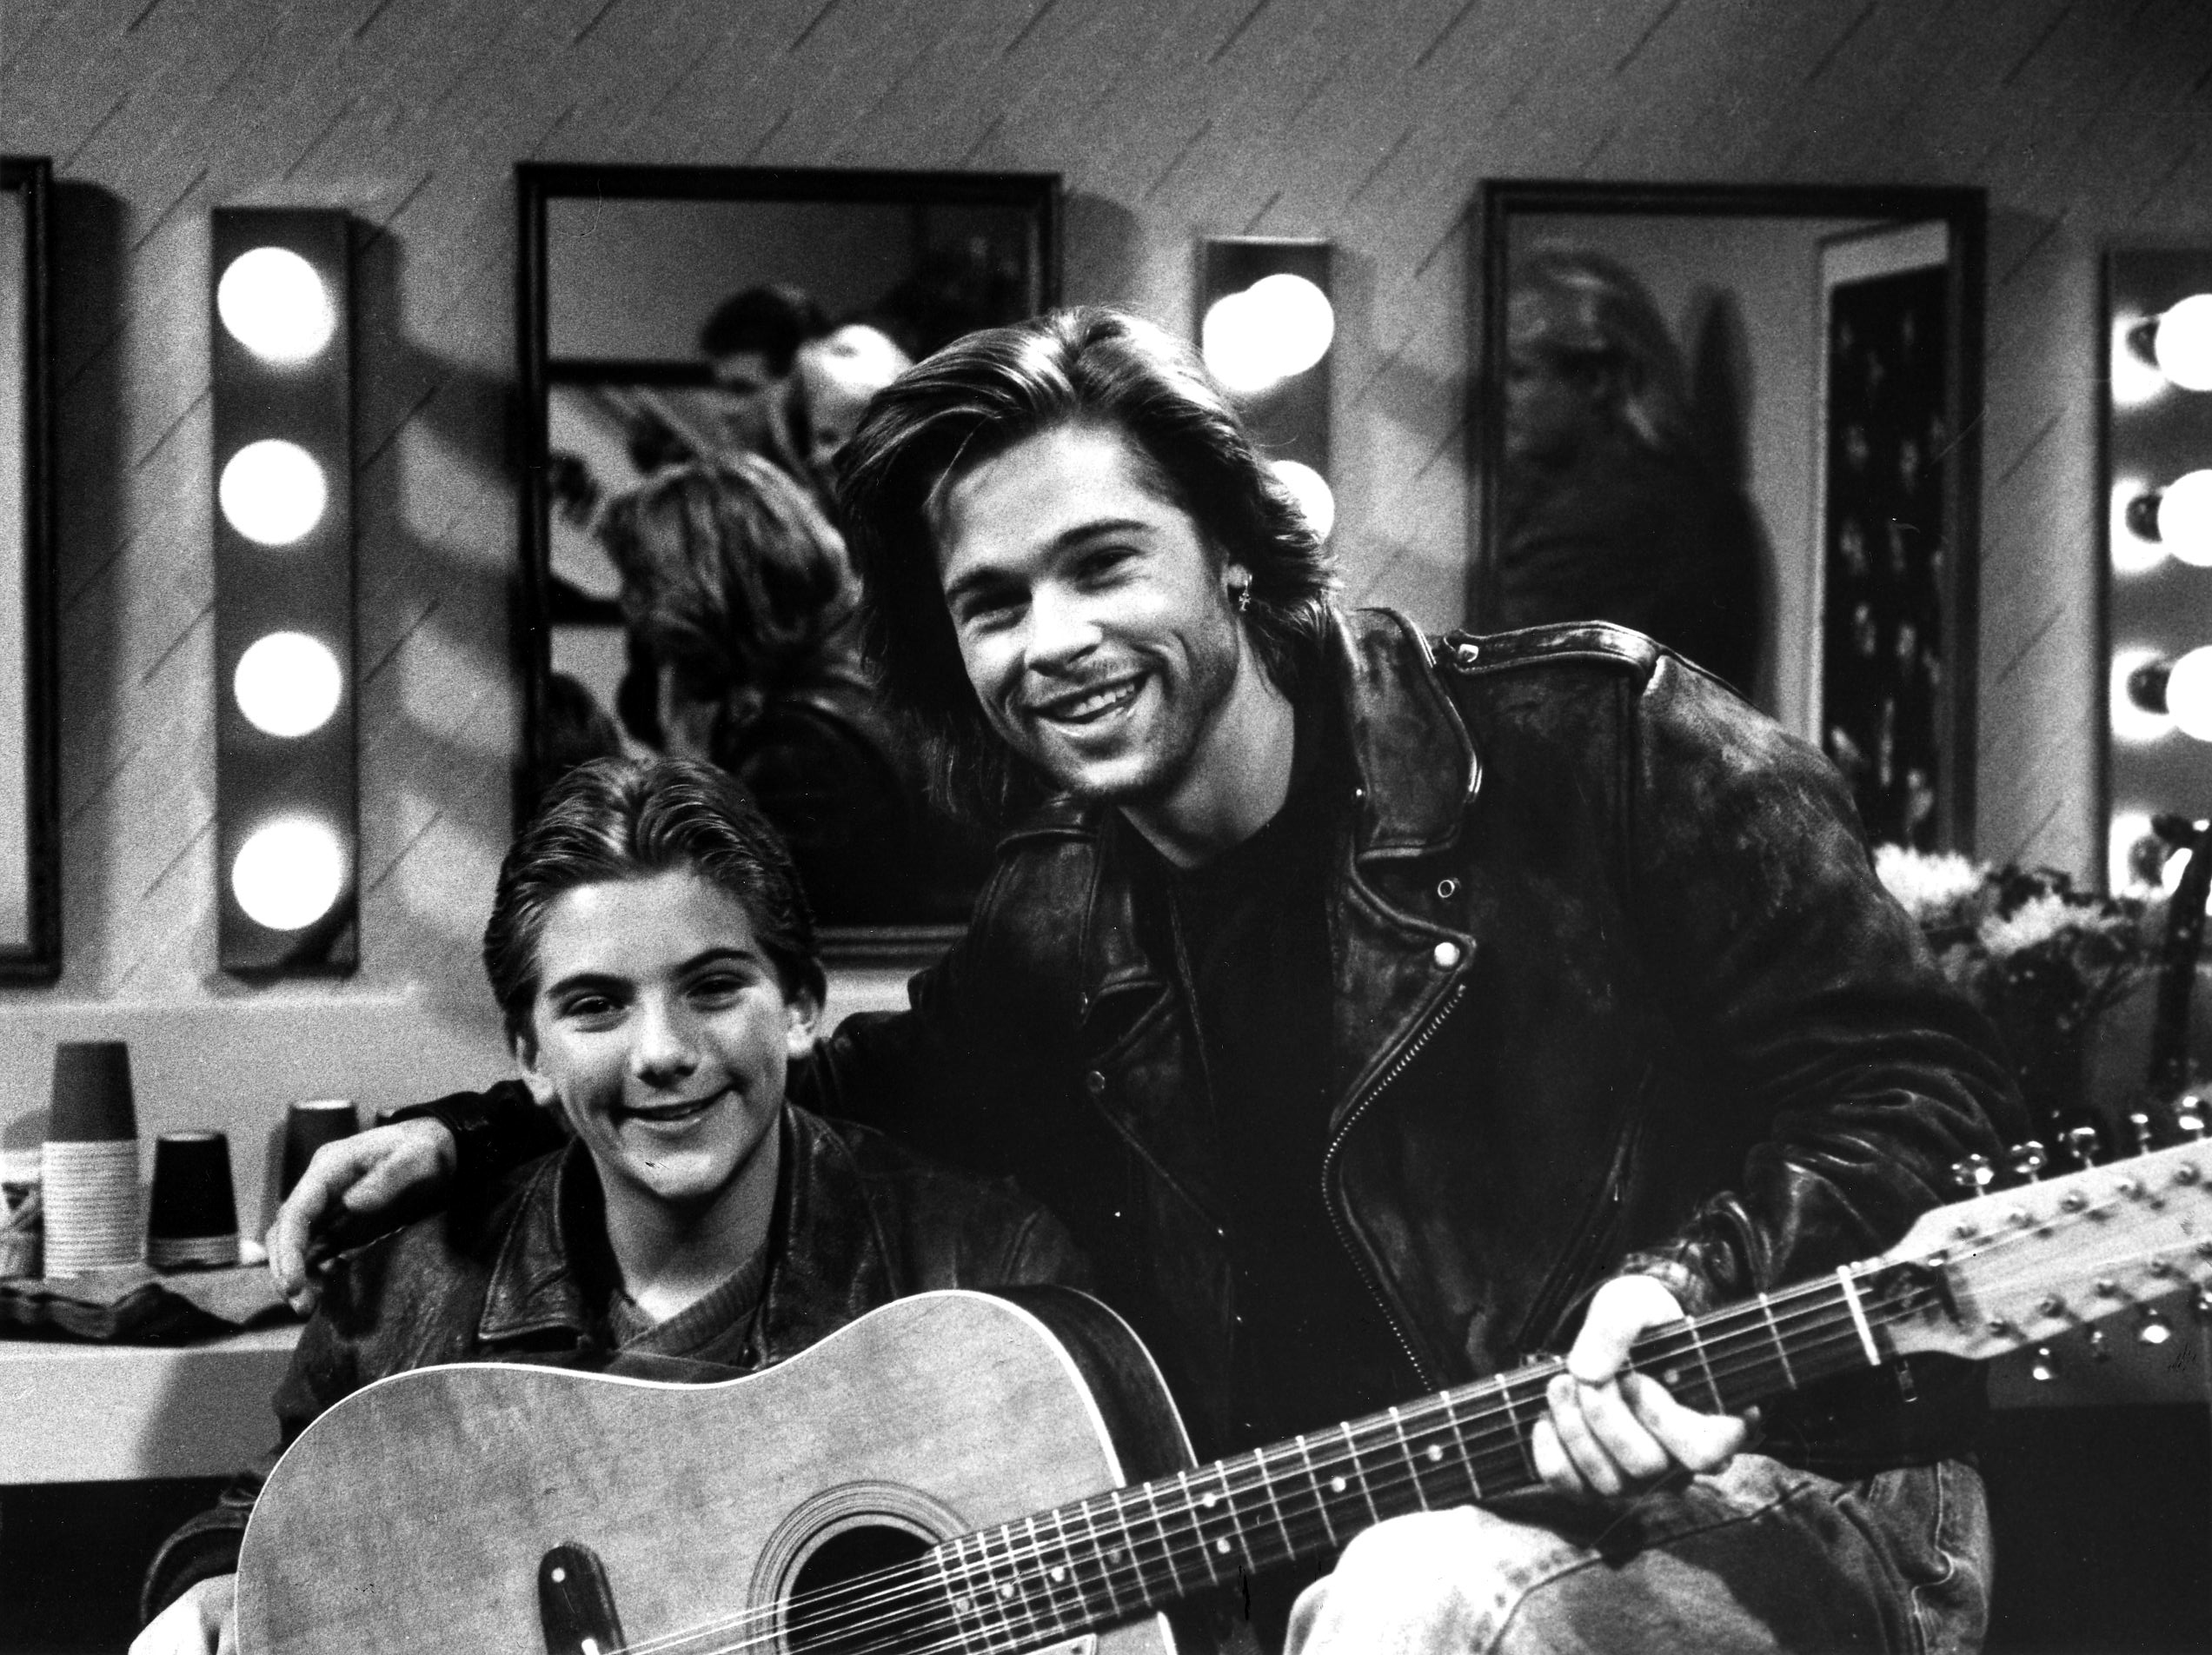 Jeremy Miller and Brad Pitt on 'Growing Pains'